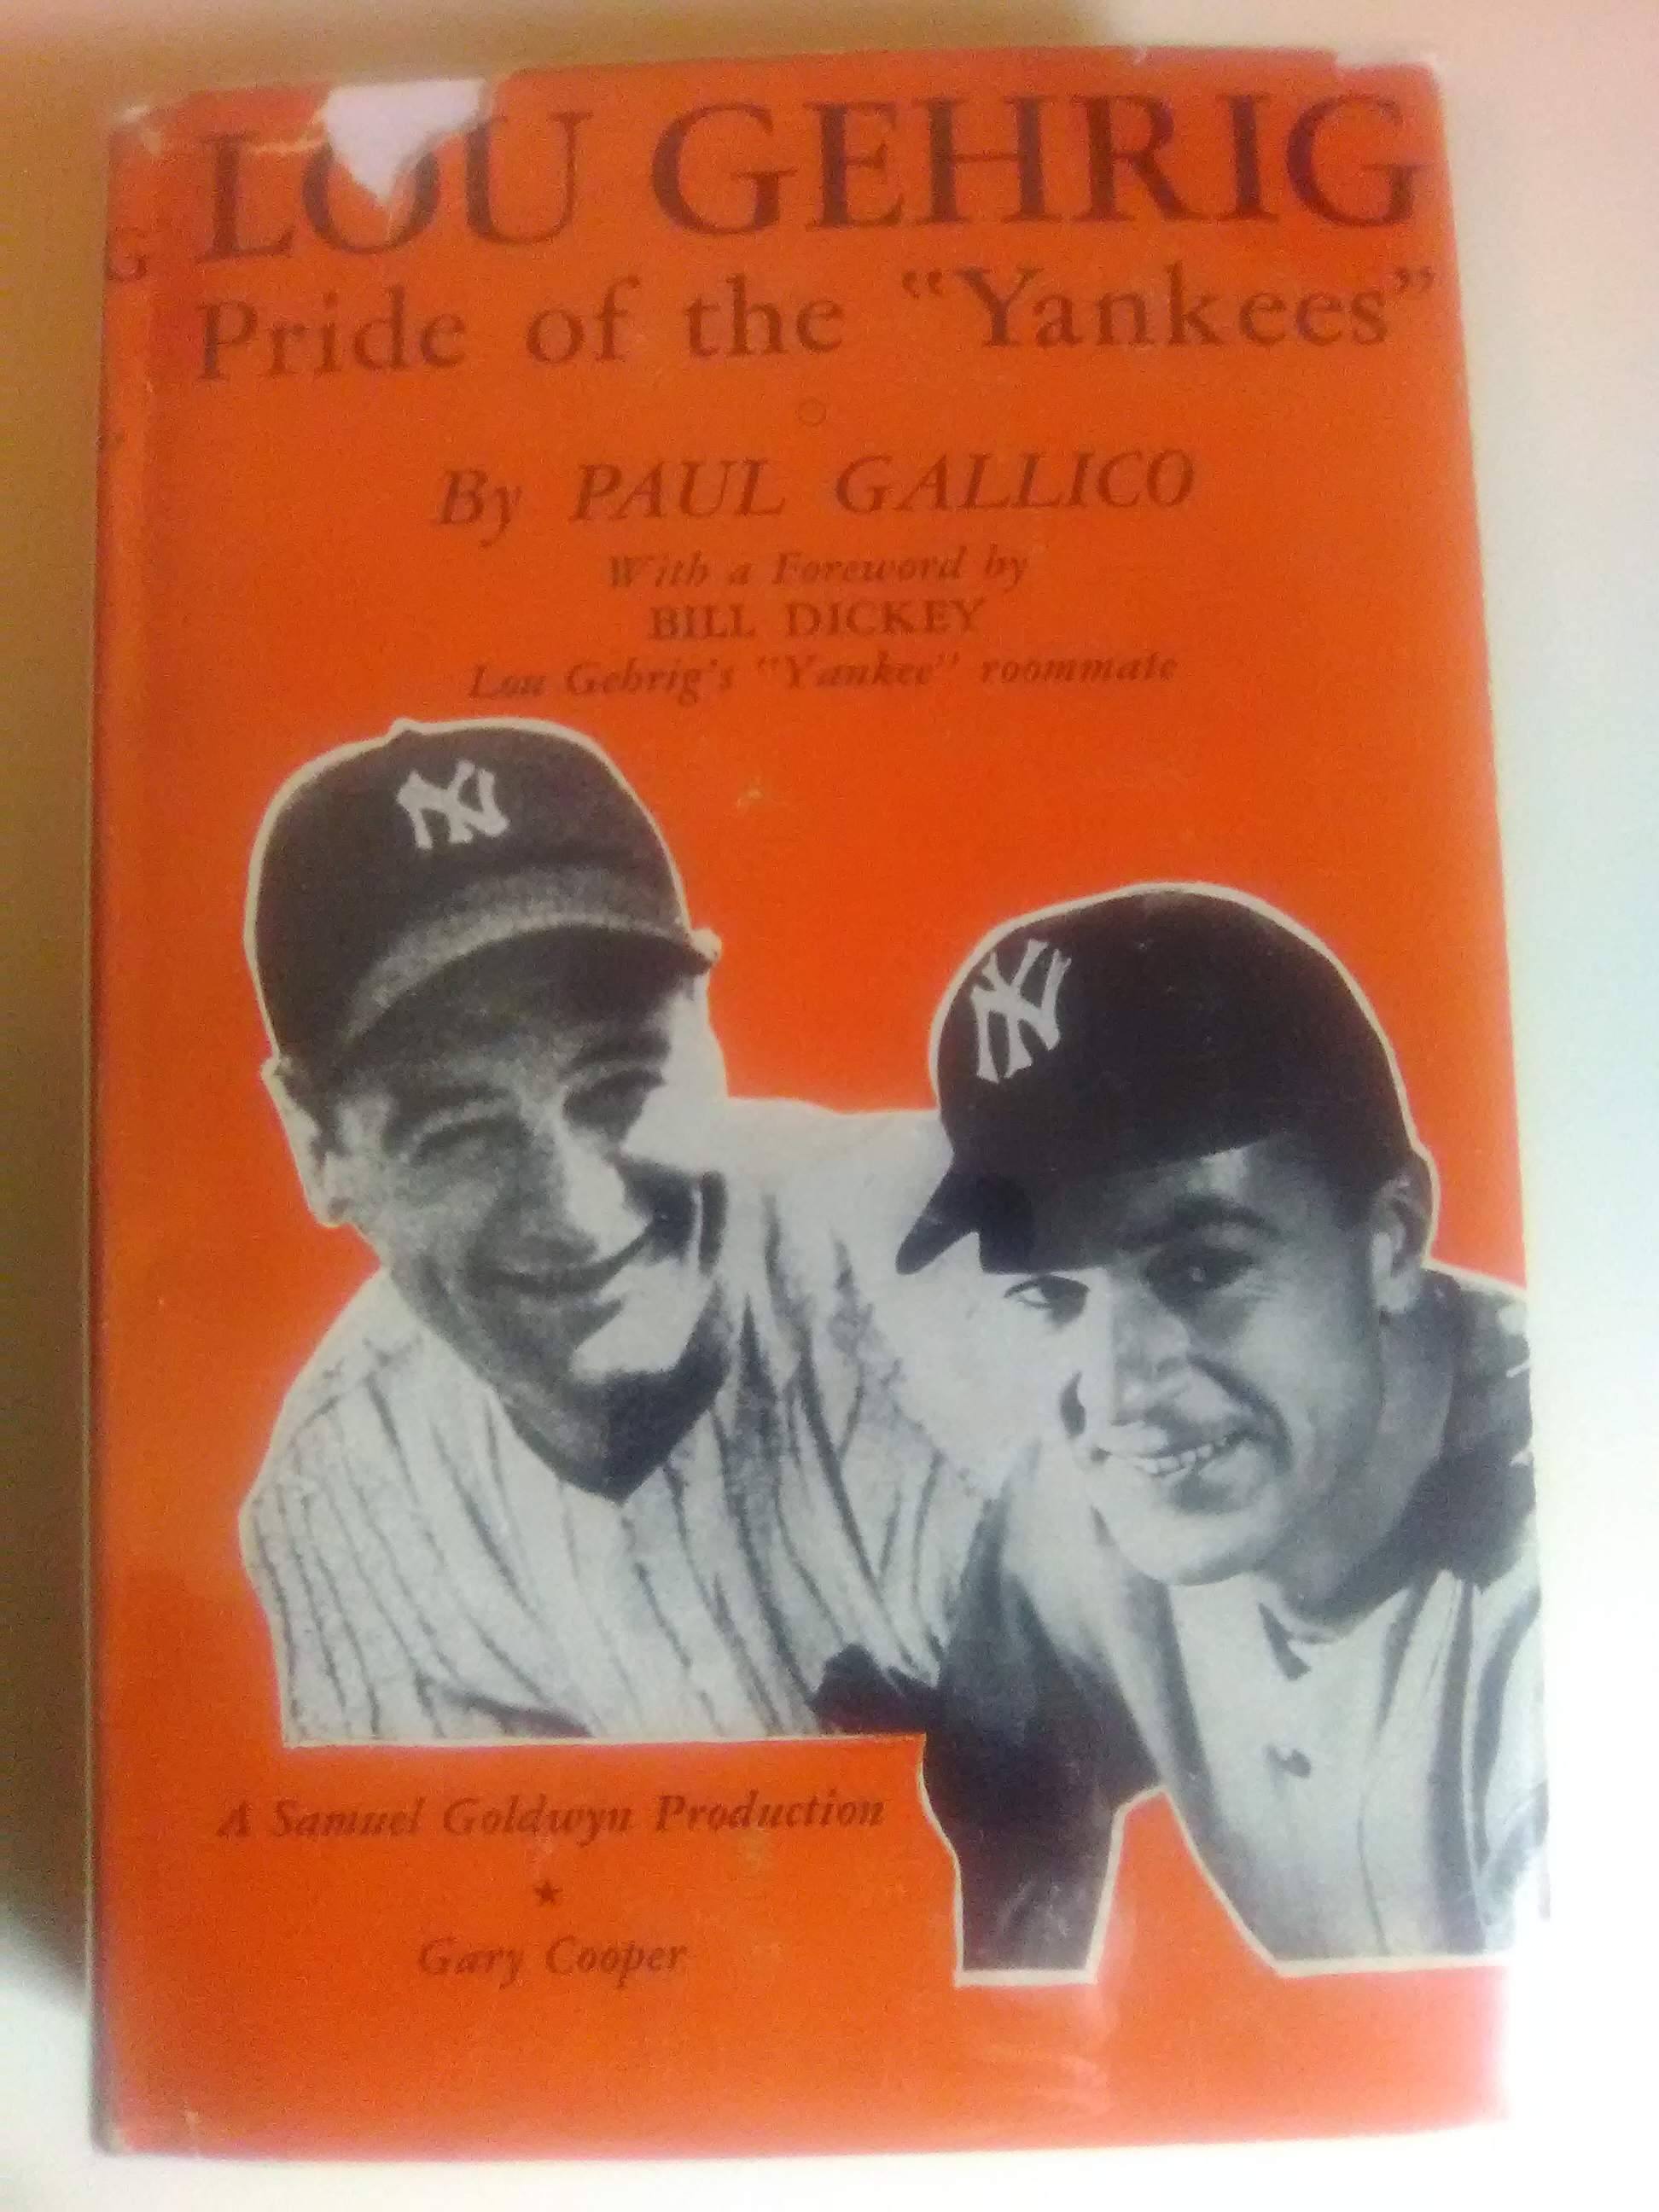 baseball memoir We hope short description about me and my dad: a baseball memoir ebook above, interested you to read full version of this book written by paul o'neill.